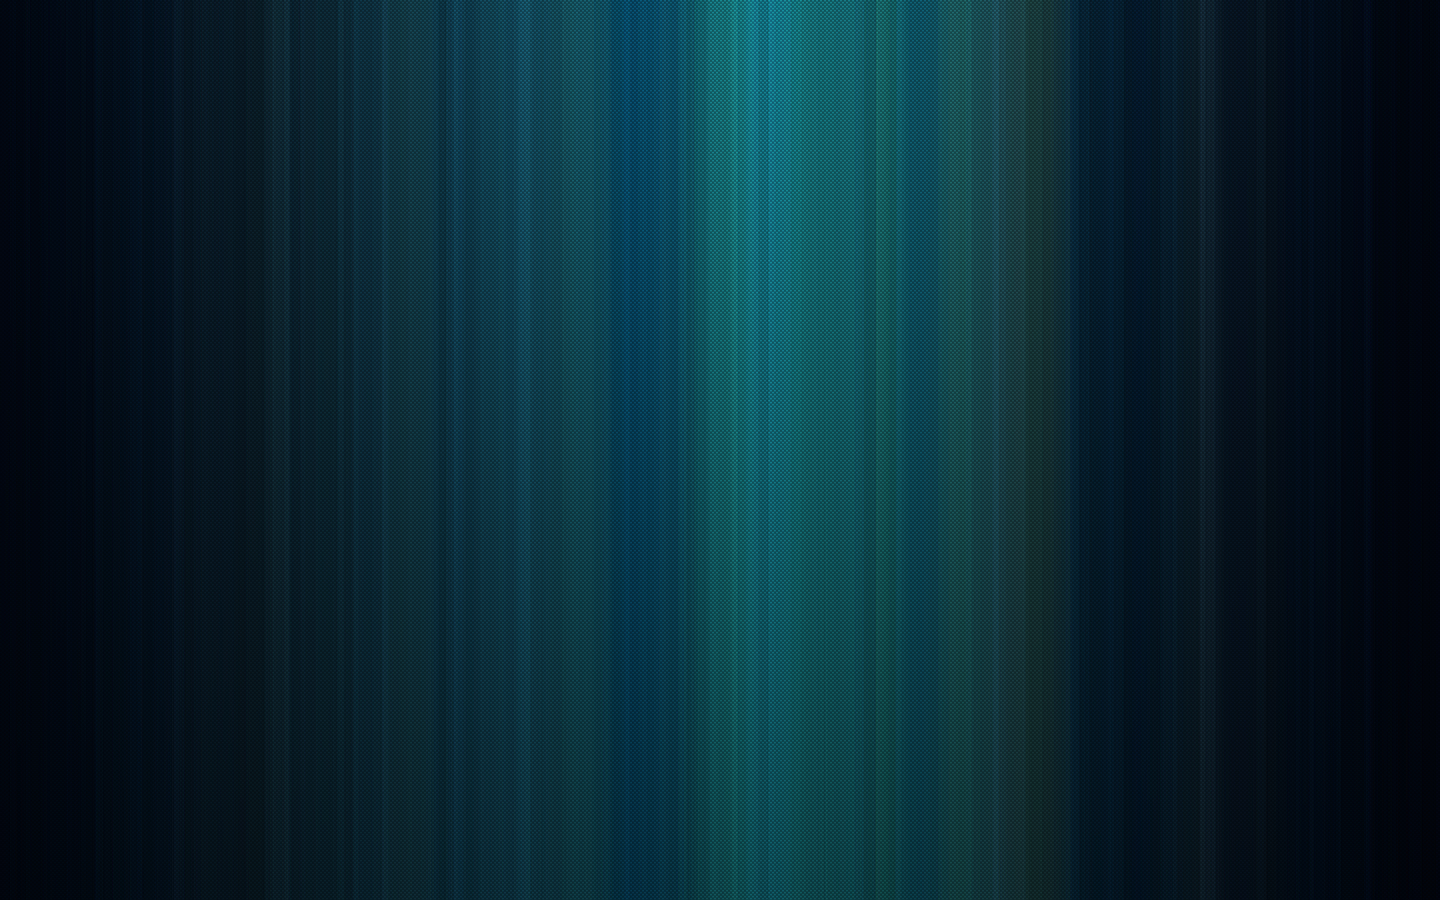 vertical streaks by HD Wallpaper